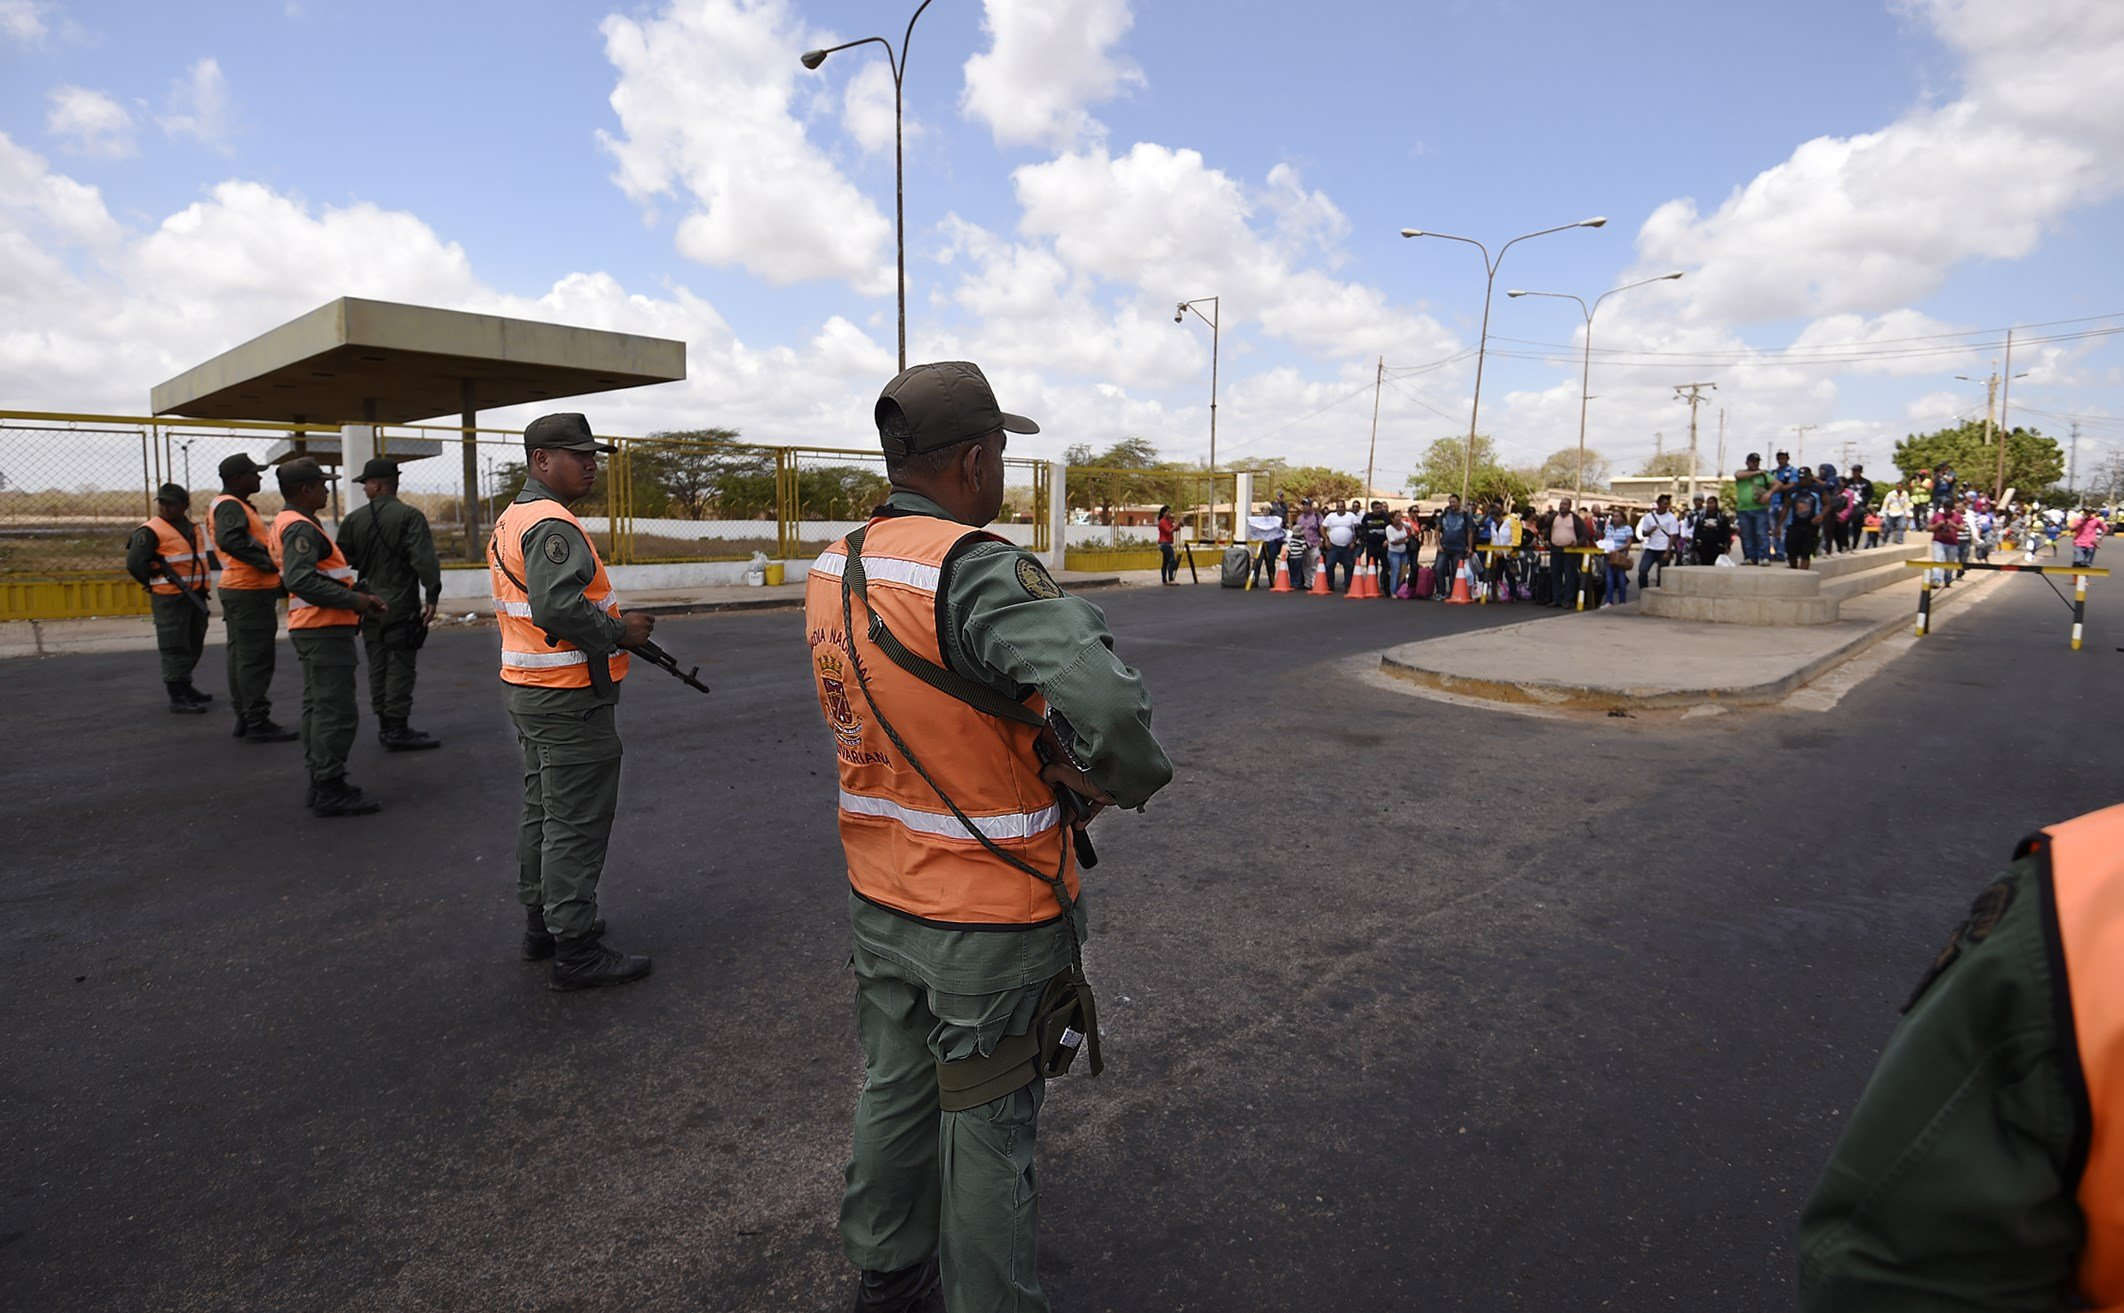 Members of the national guard stand at a checkpoint in Paraguachon, Zulia state, Venezuela, in the border with Colombia on Sept. 9, 2015. Venezuela's President Nicolas Maduro late Monday said he had ordered more of his country's vast border with Colombia closed amid a diplomatic crisis over deportations and smuggling. (JUAN BARRETO/AFP via Getty Images)